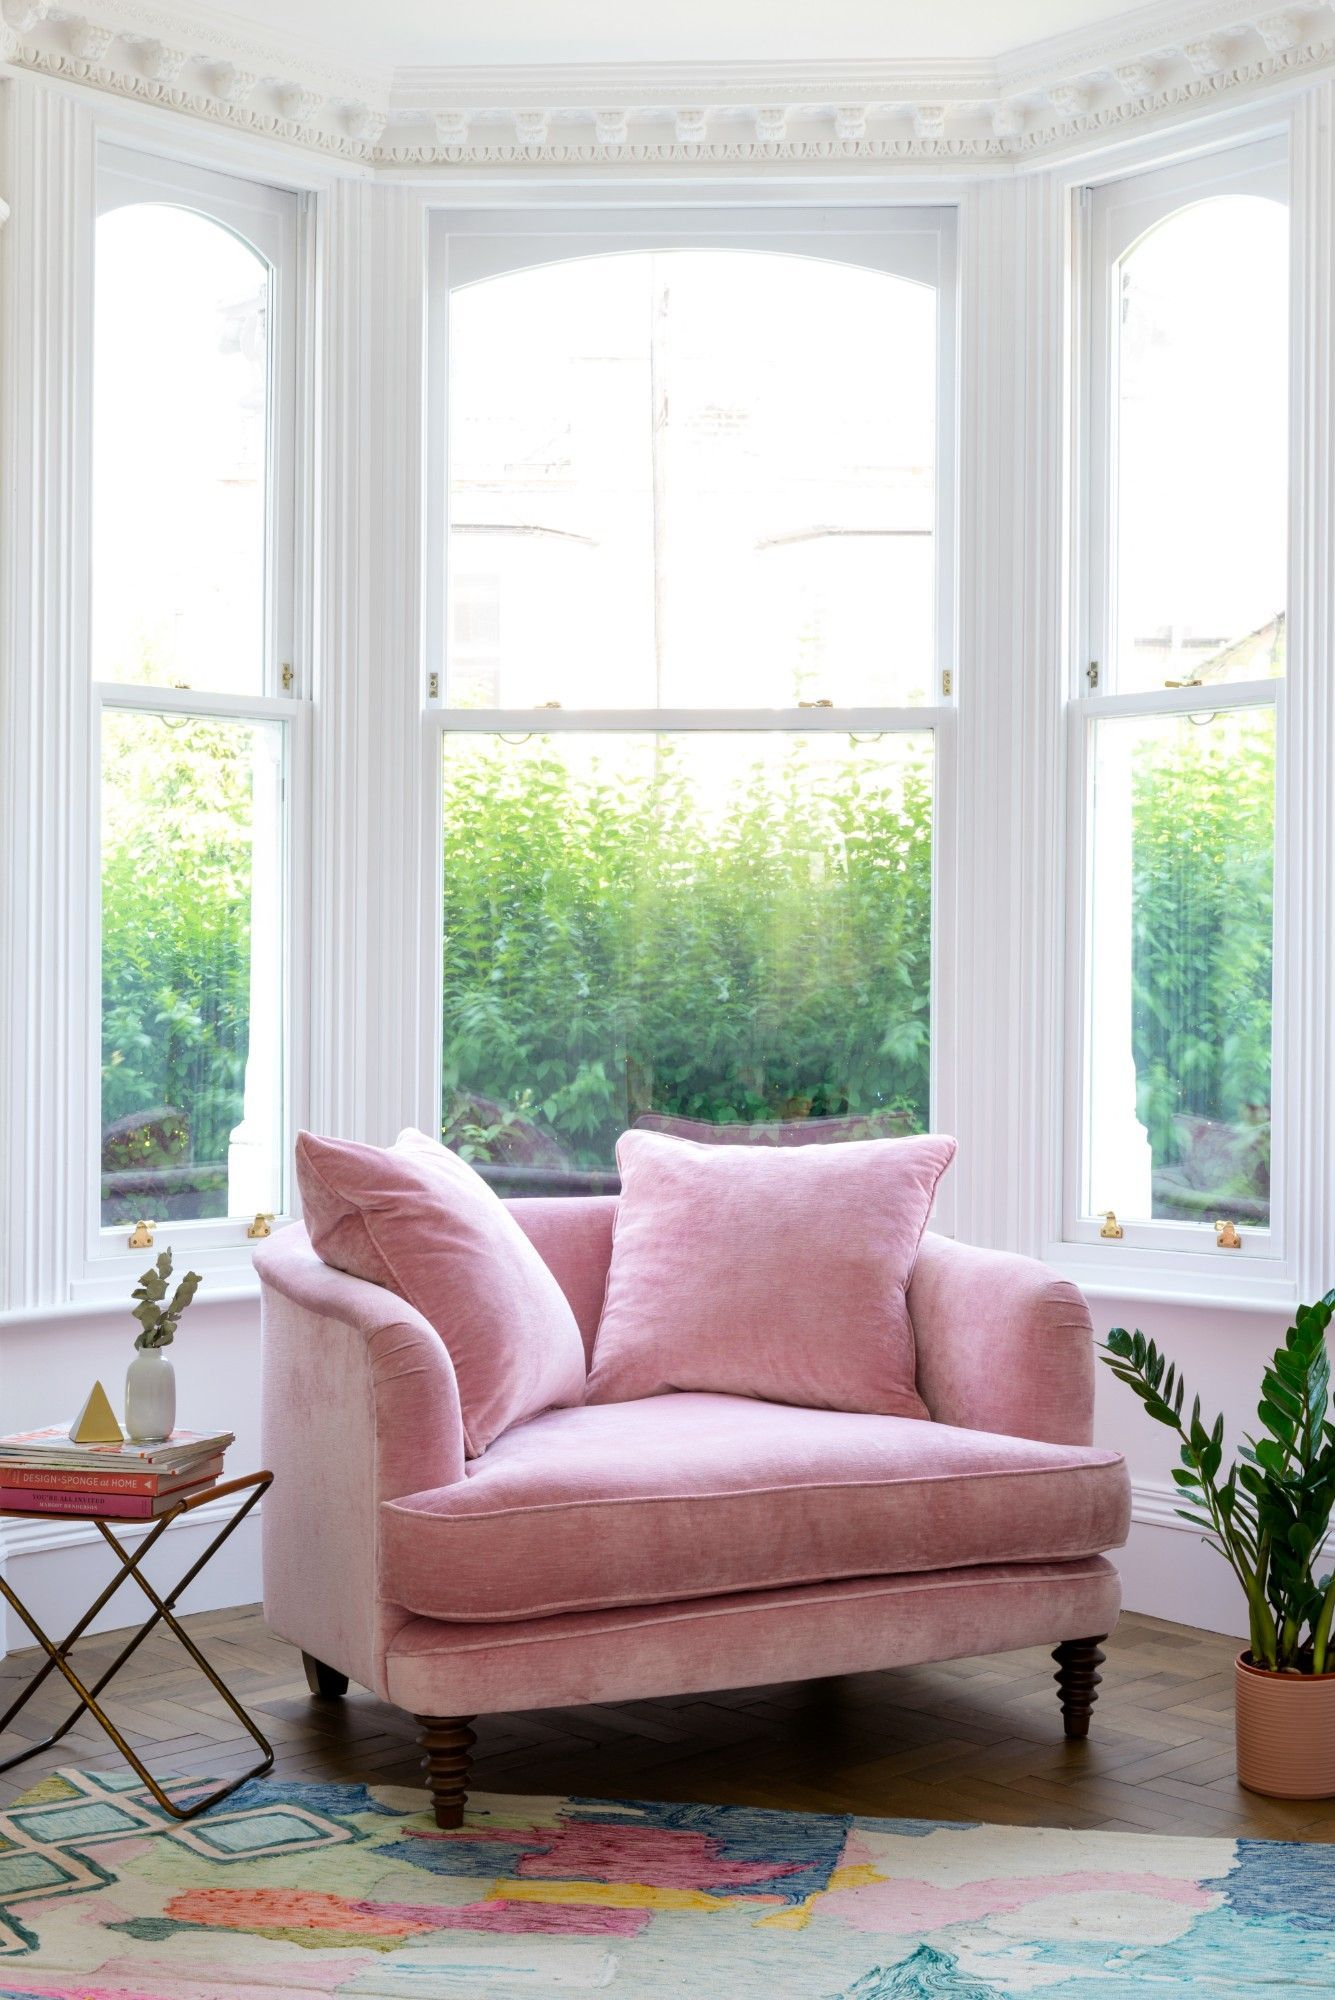 We love a pink snuggler What do you think?